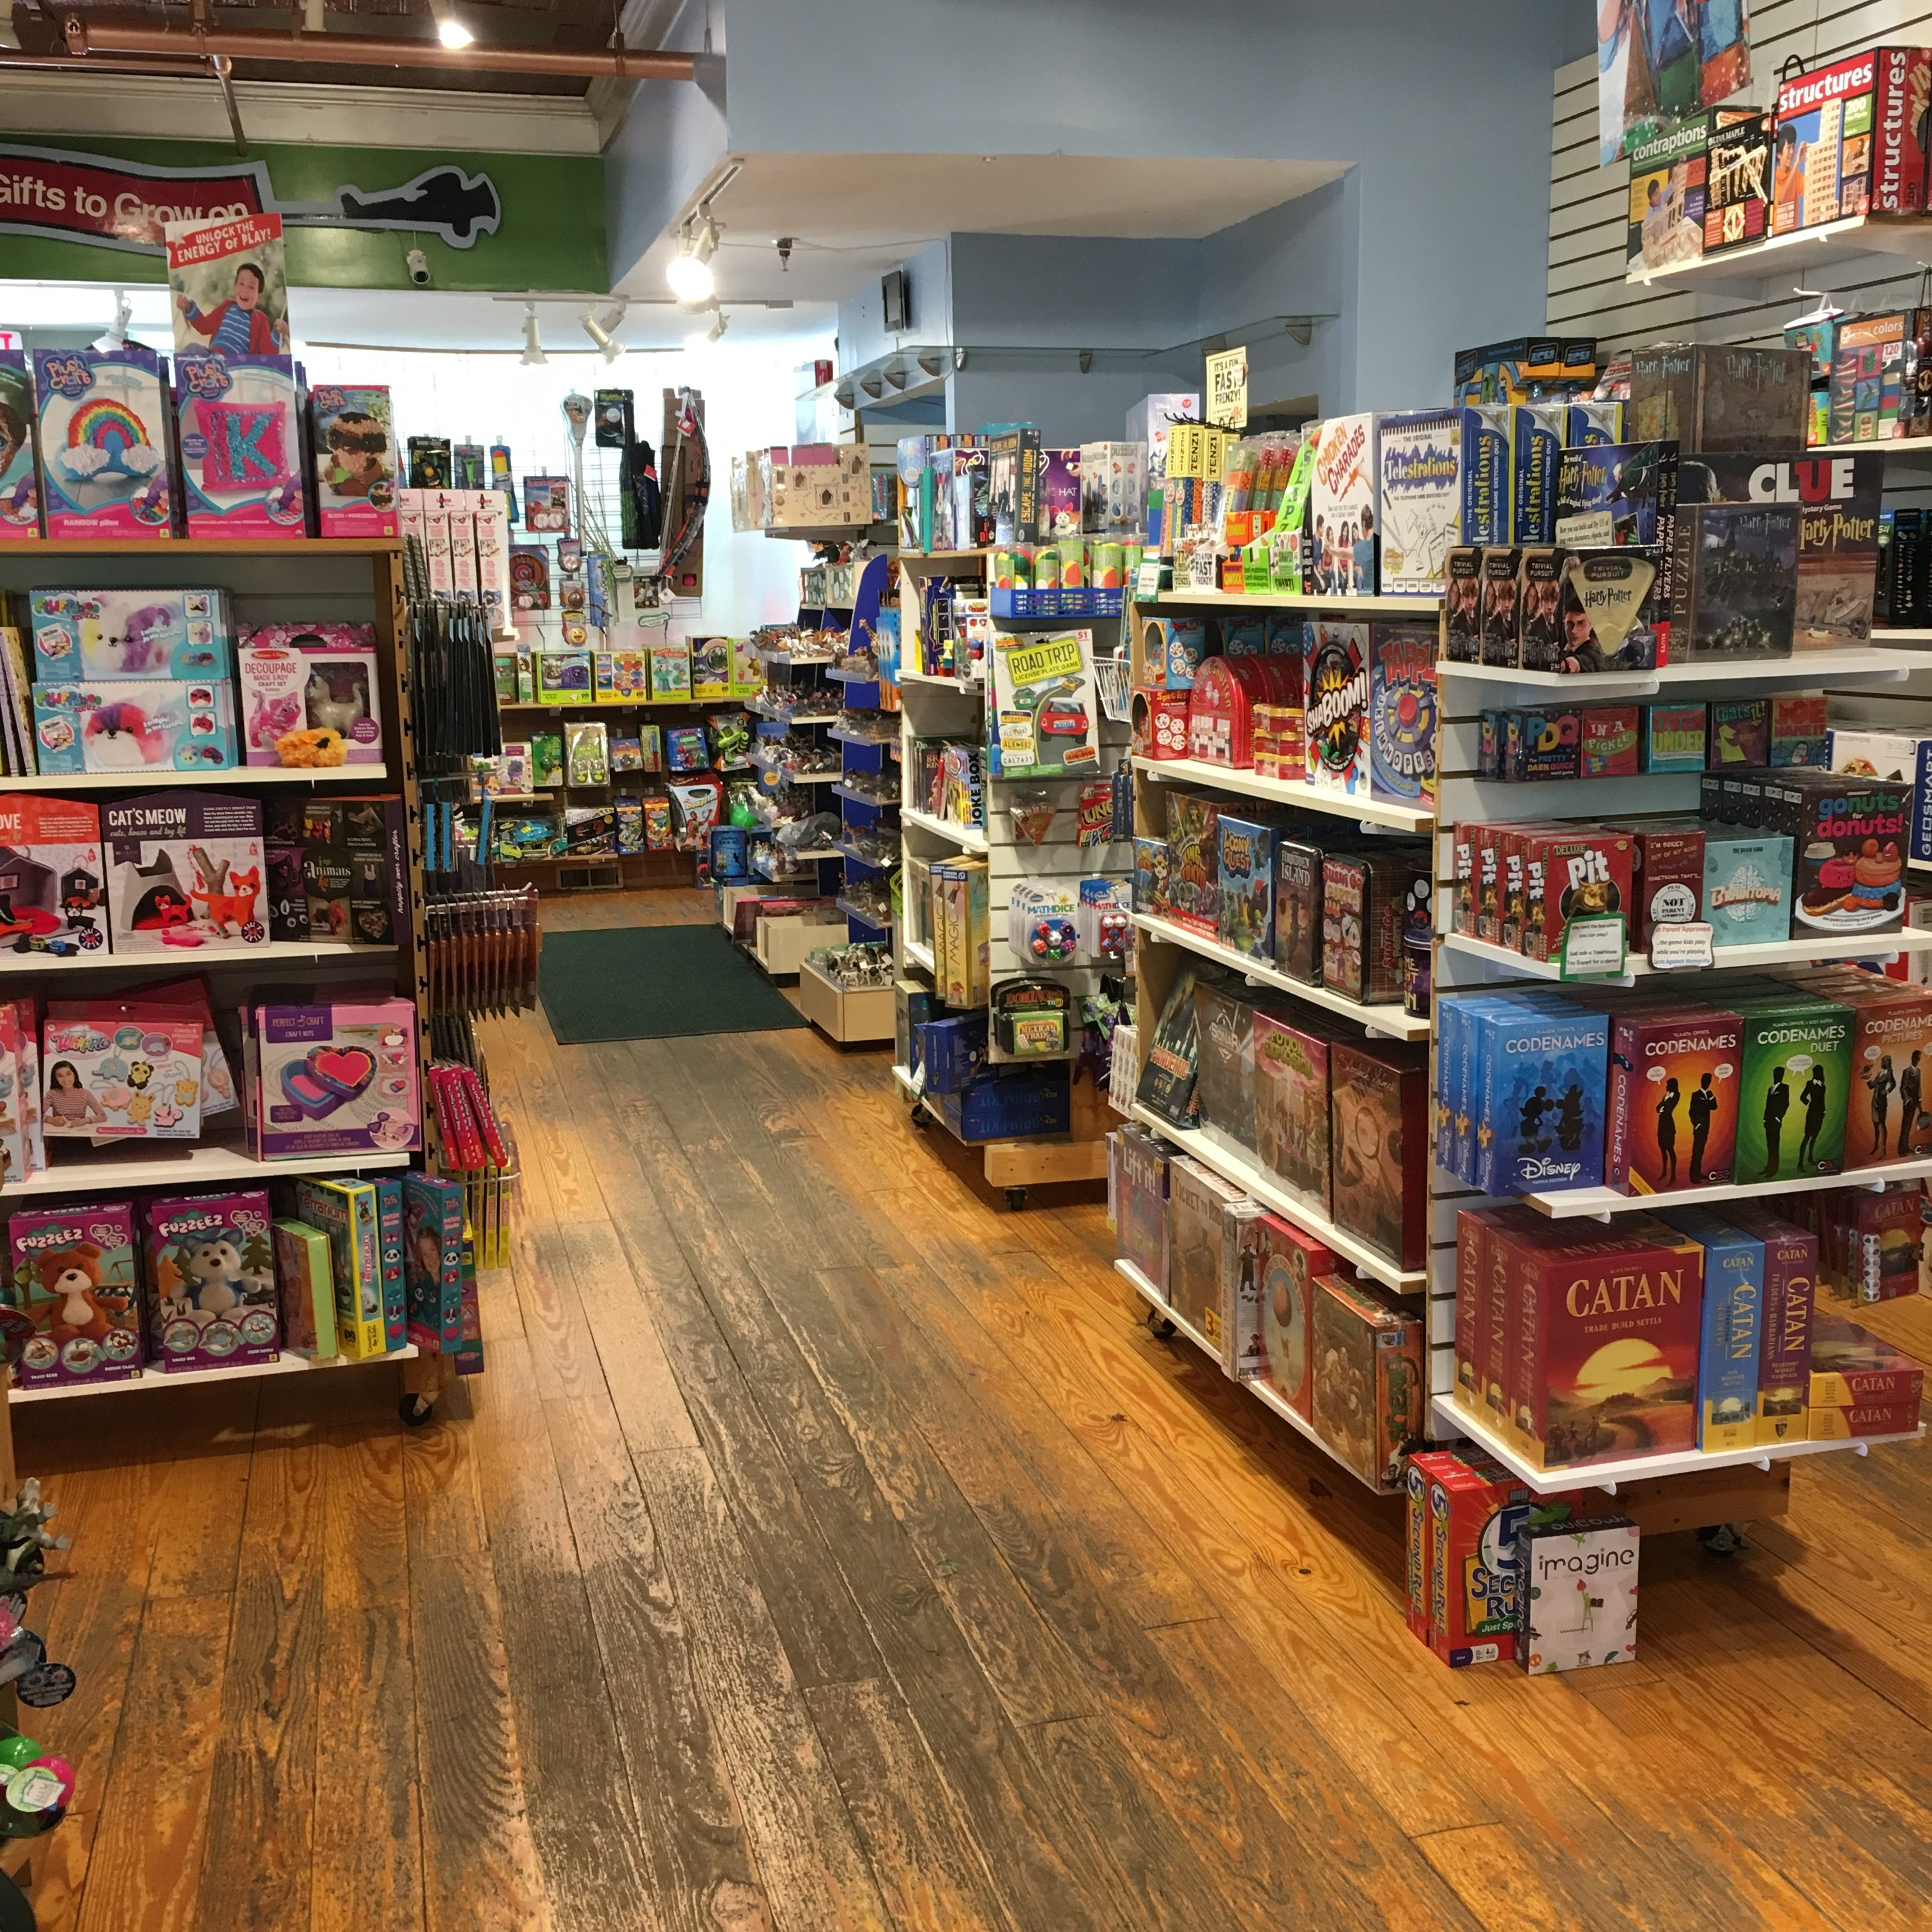 Habitat Outlet Hamburg The Treehouse Toy Store Offers Endless Opportunities For Fun And